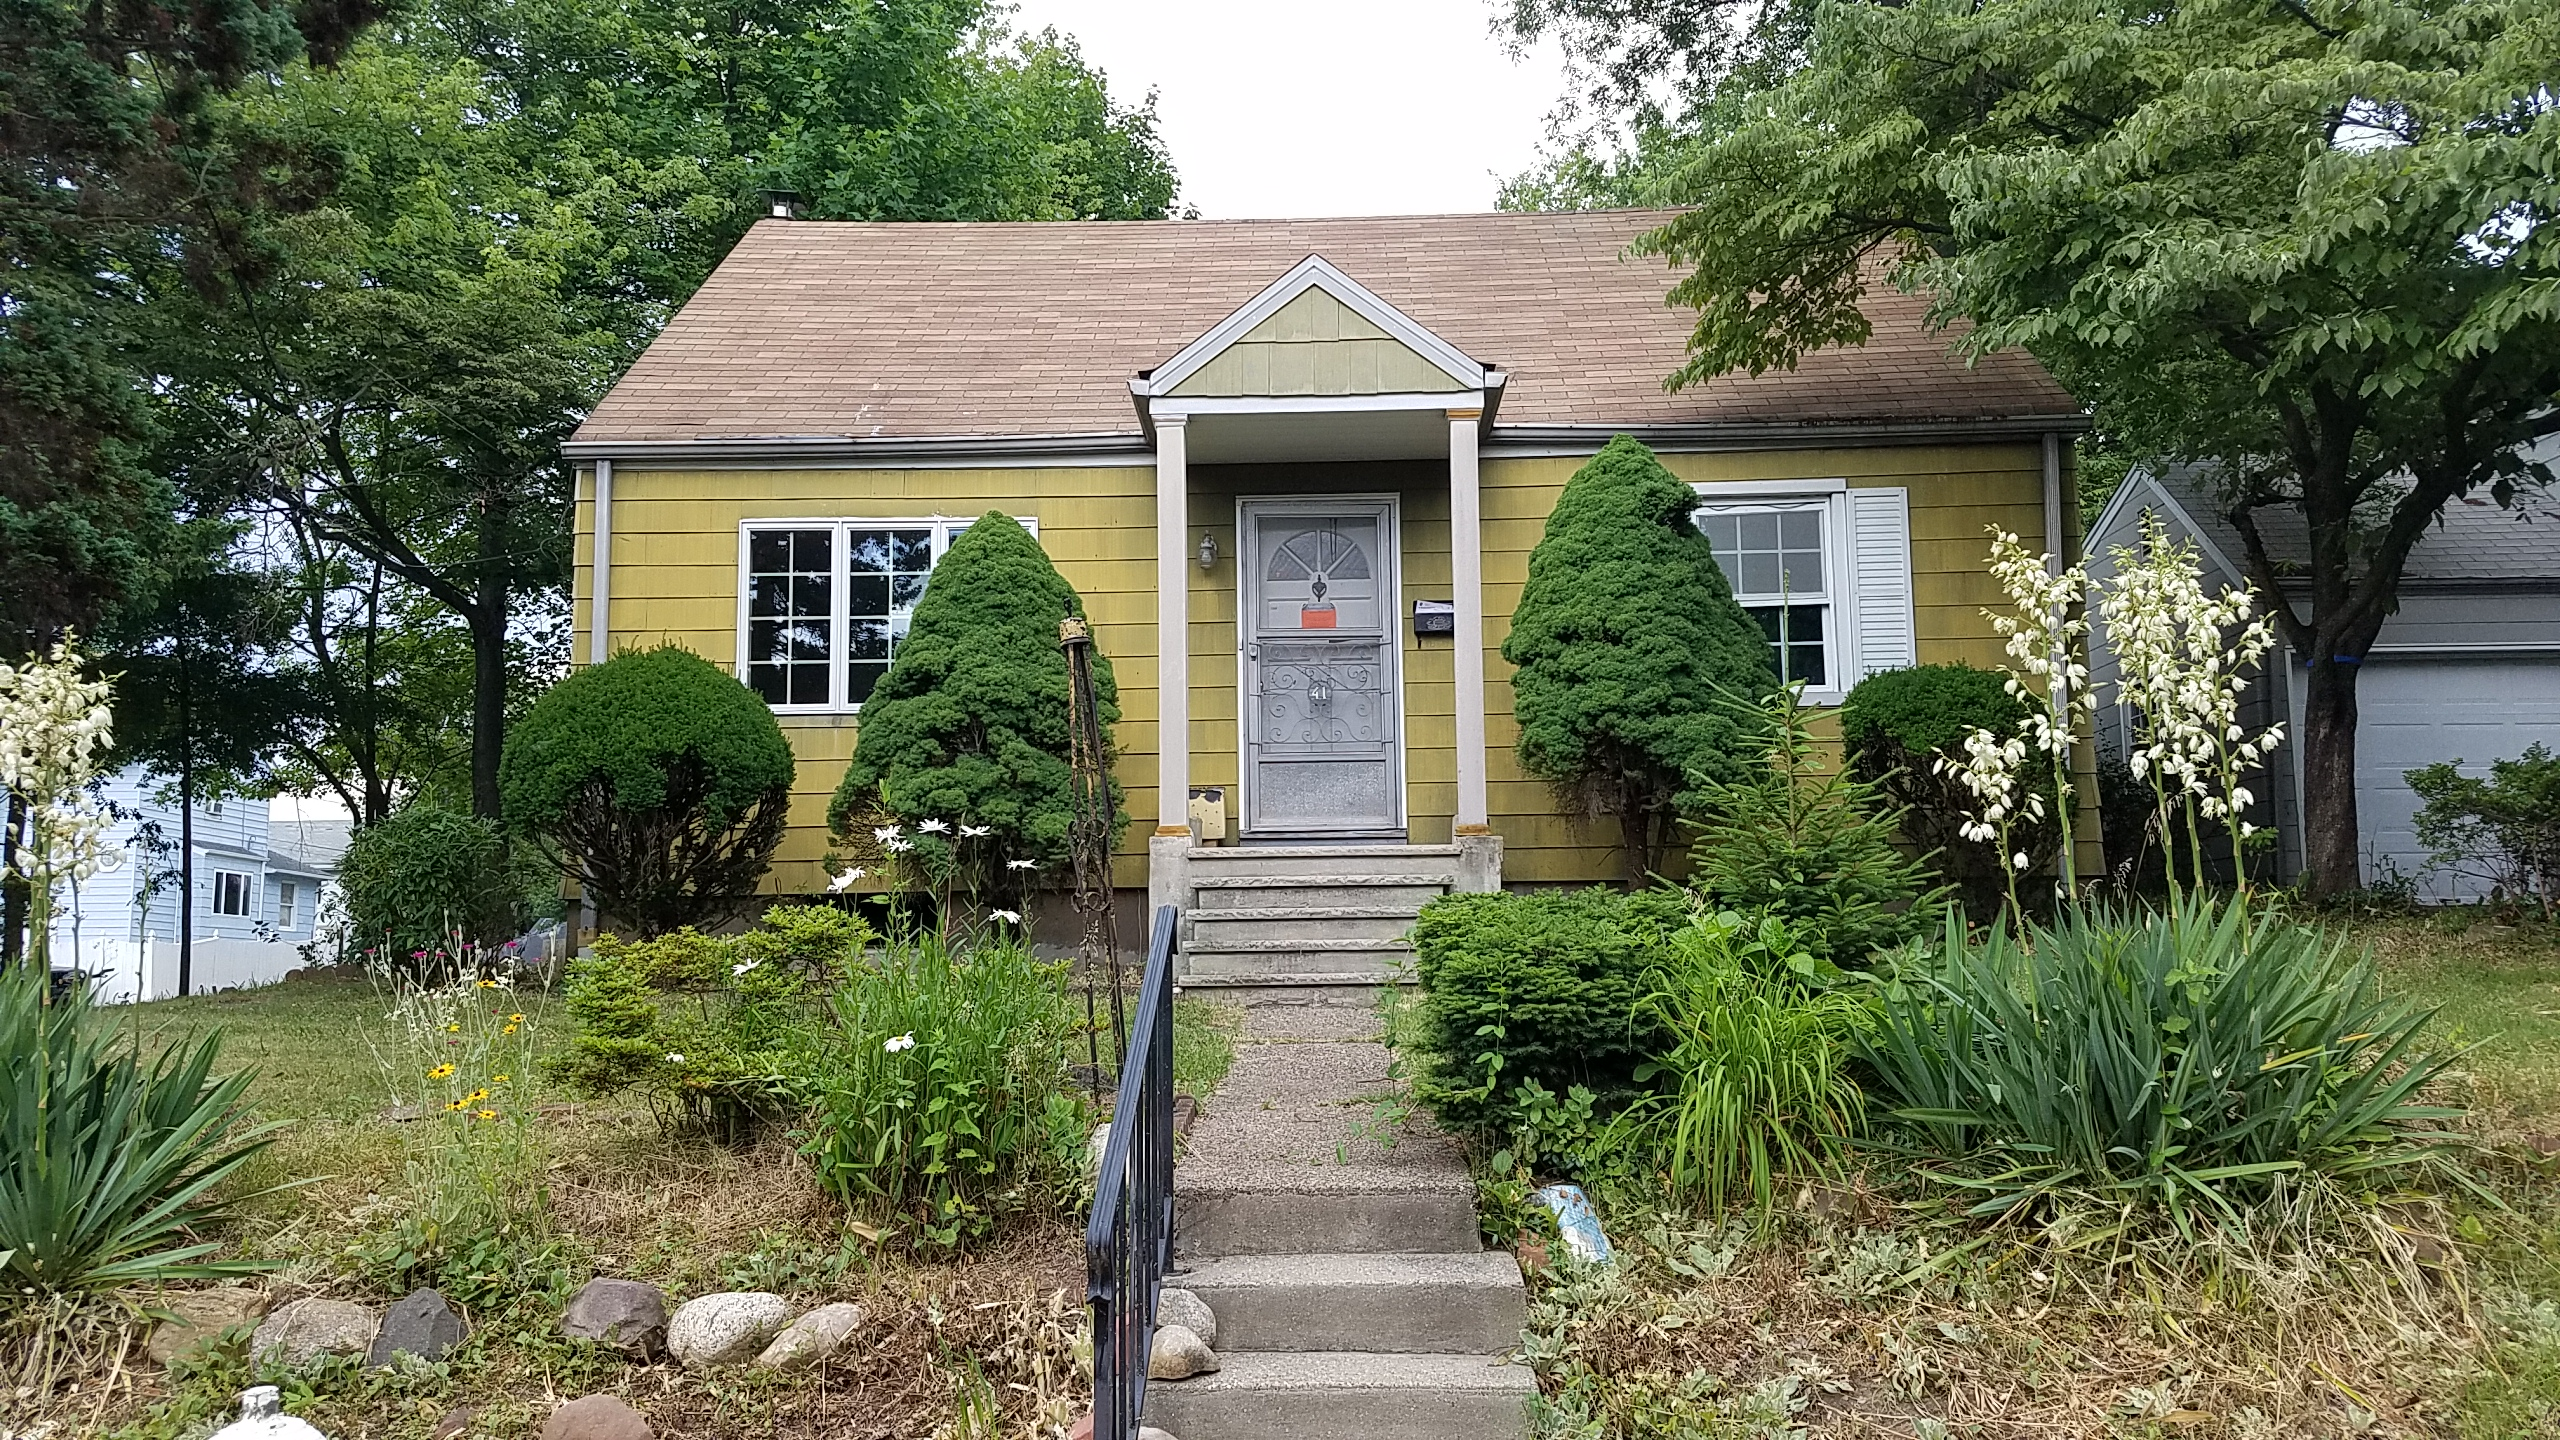 UNDER CONTRACT – 41 PLEASANT AVE BERGENFIELD, NJ 07621 $240,00